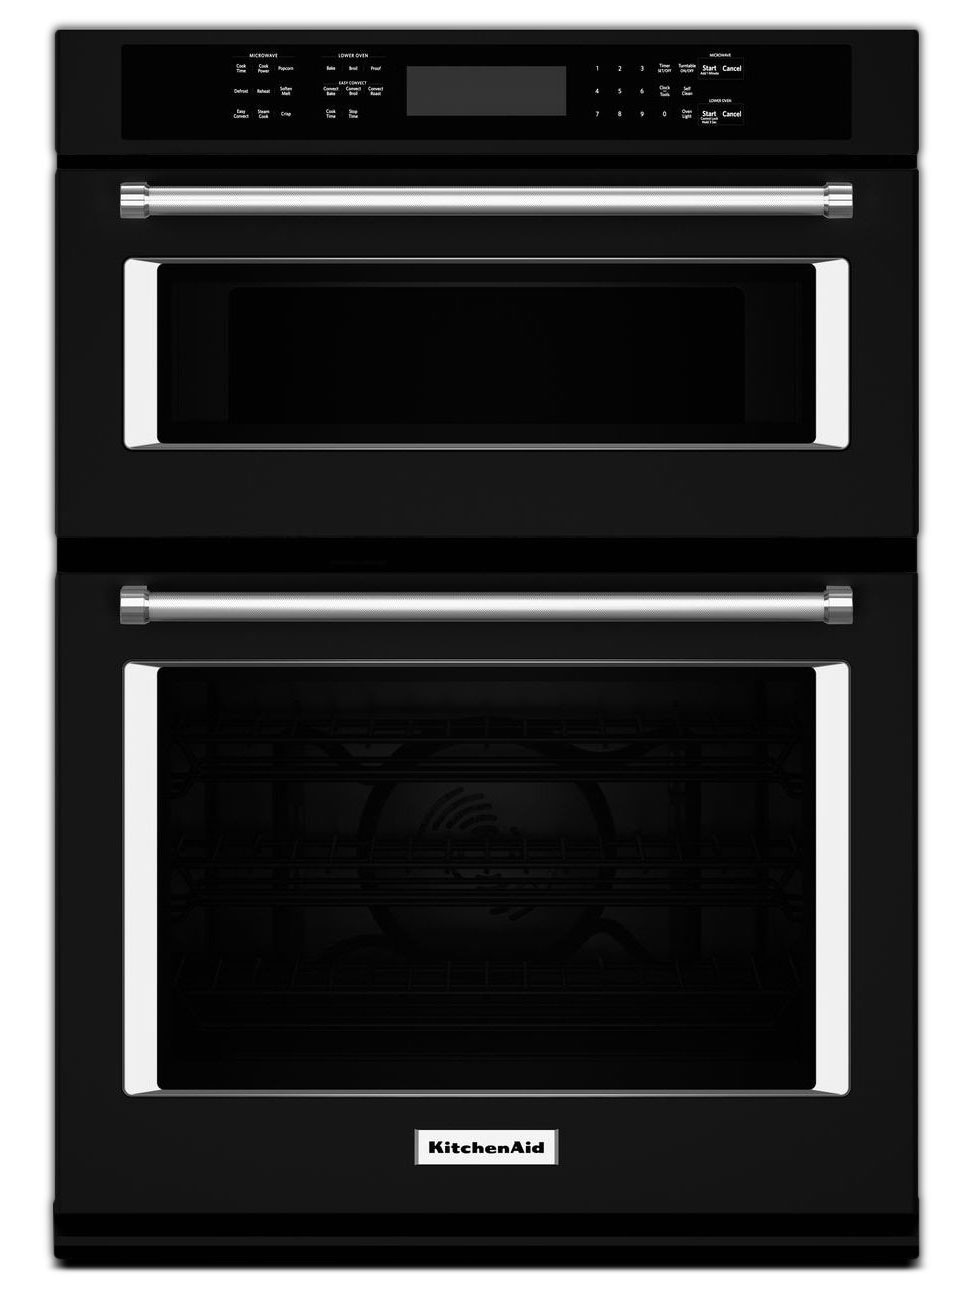 Cooking Products - KitchenAid Black Convection Wall Oven (5 Cu. Ft.) w/ Microwave (1.4 Cu. Ft.) - KOCE500EBL